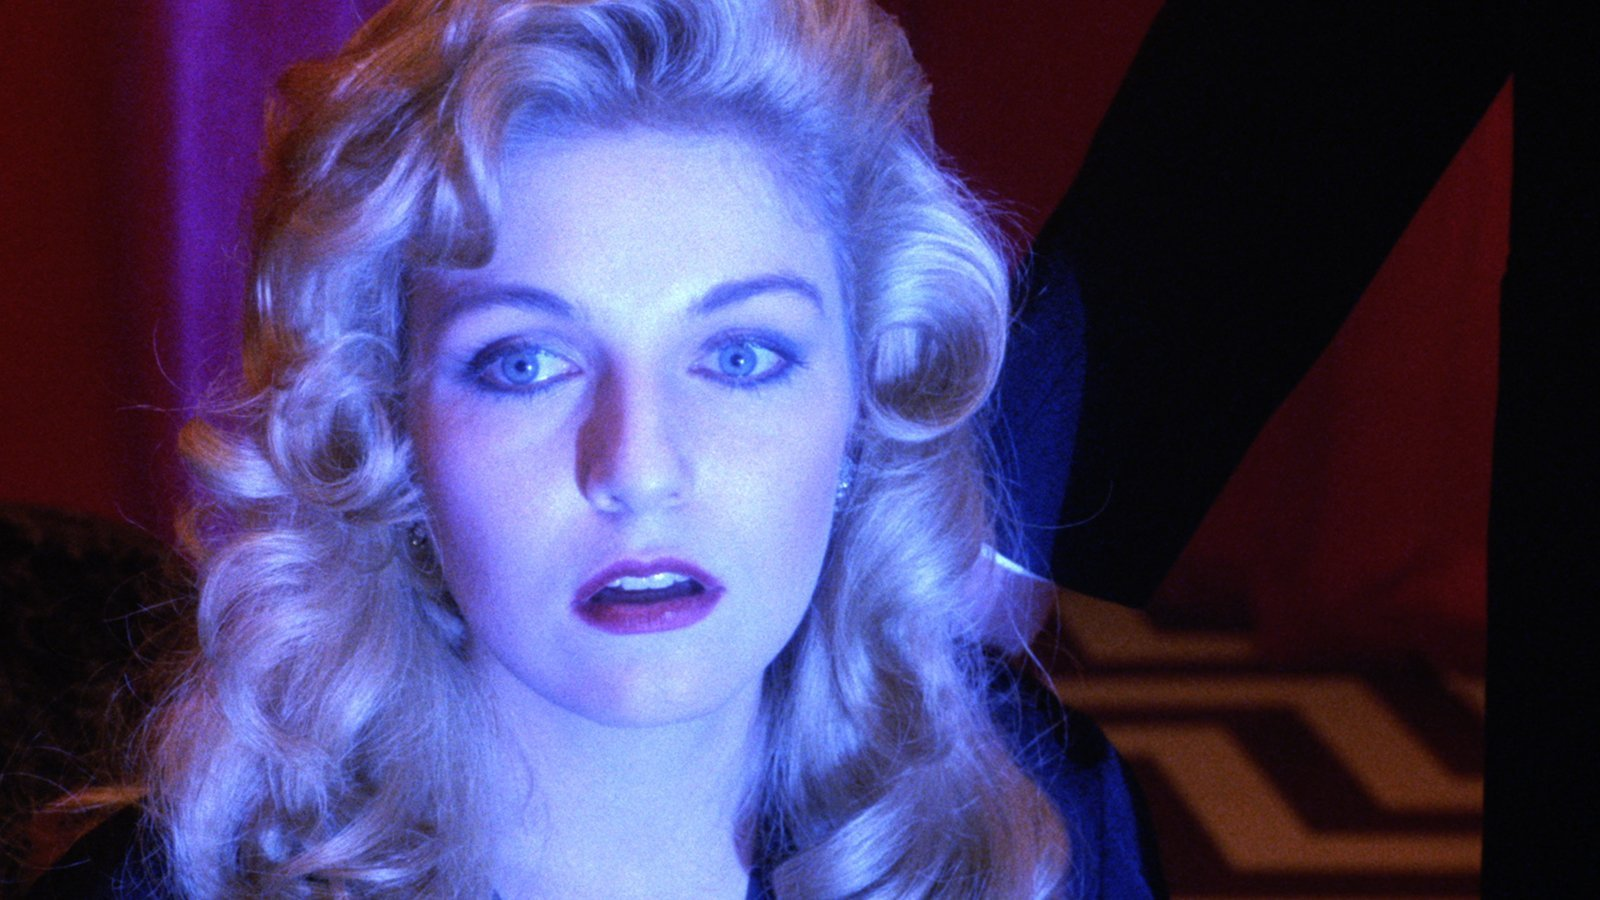 Fire Walk With Me, Laura Palmer bathed in blue light